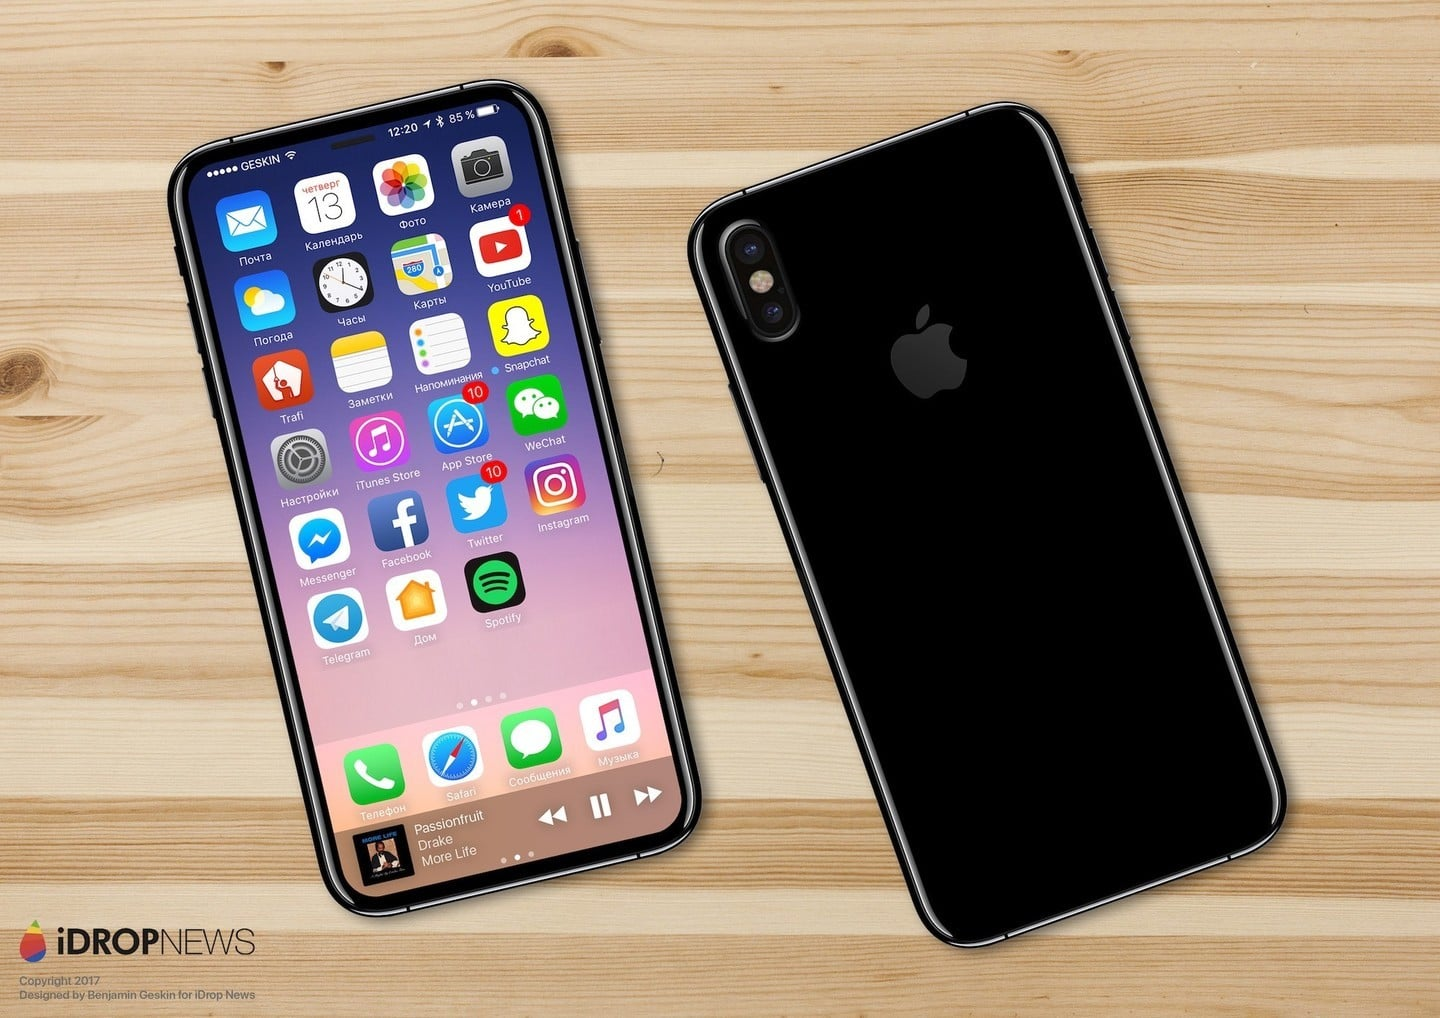 iPhone 8 prototype by iDrop News